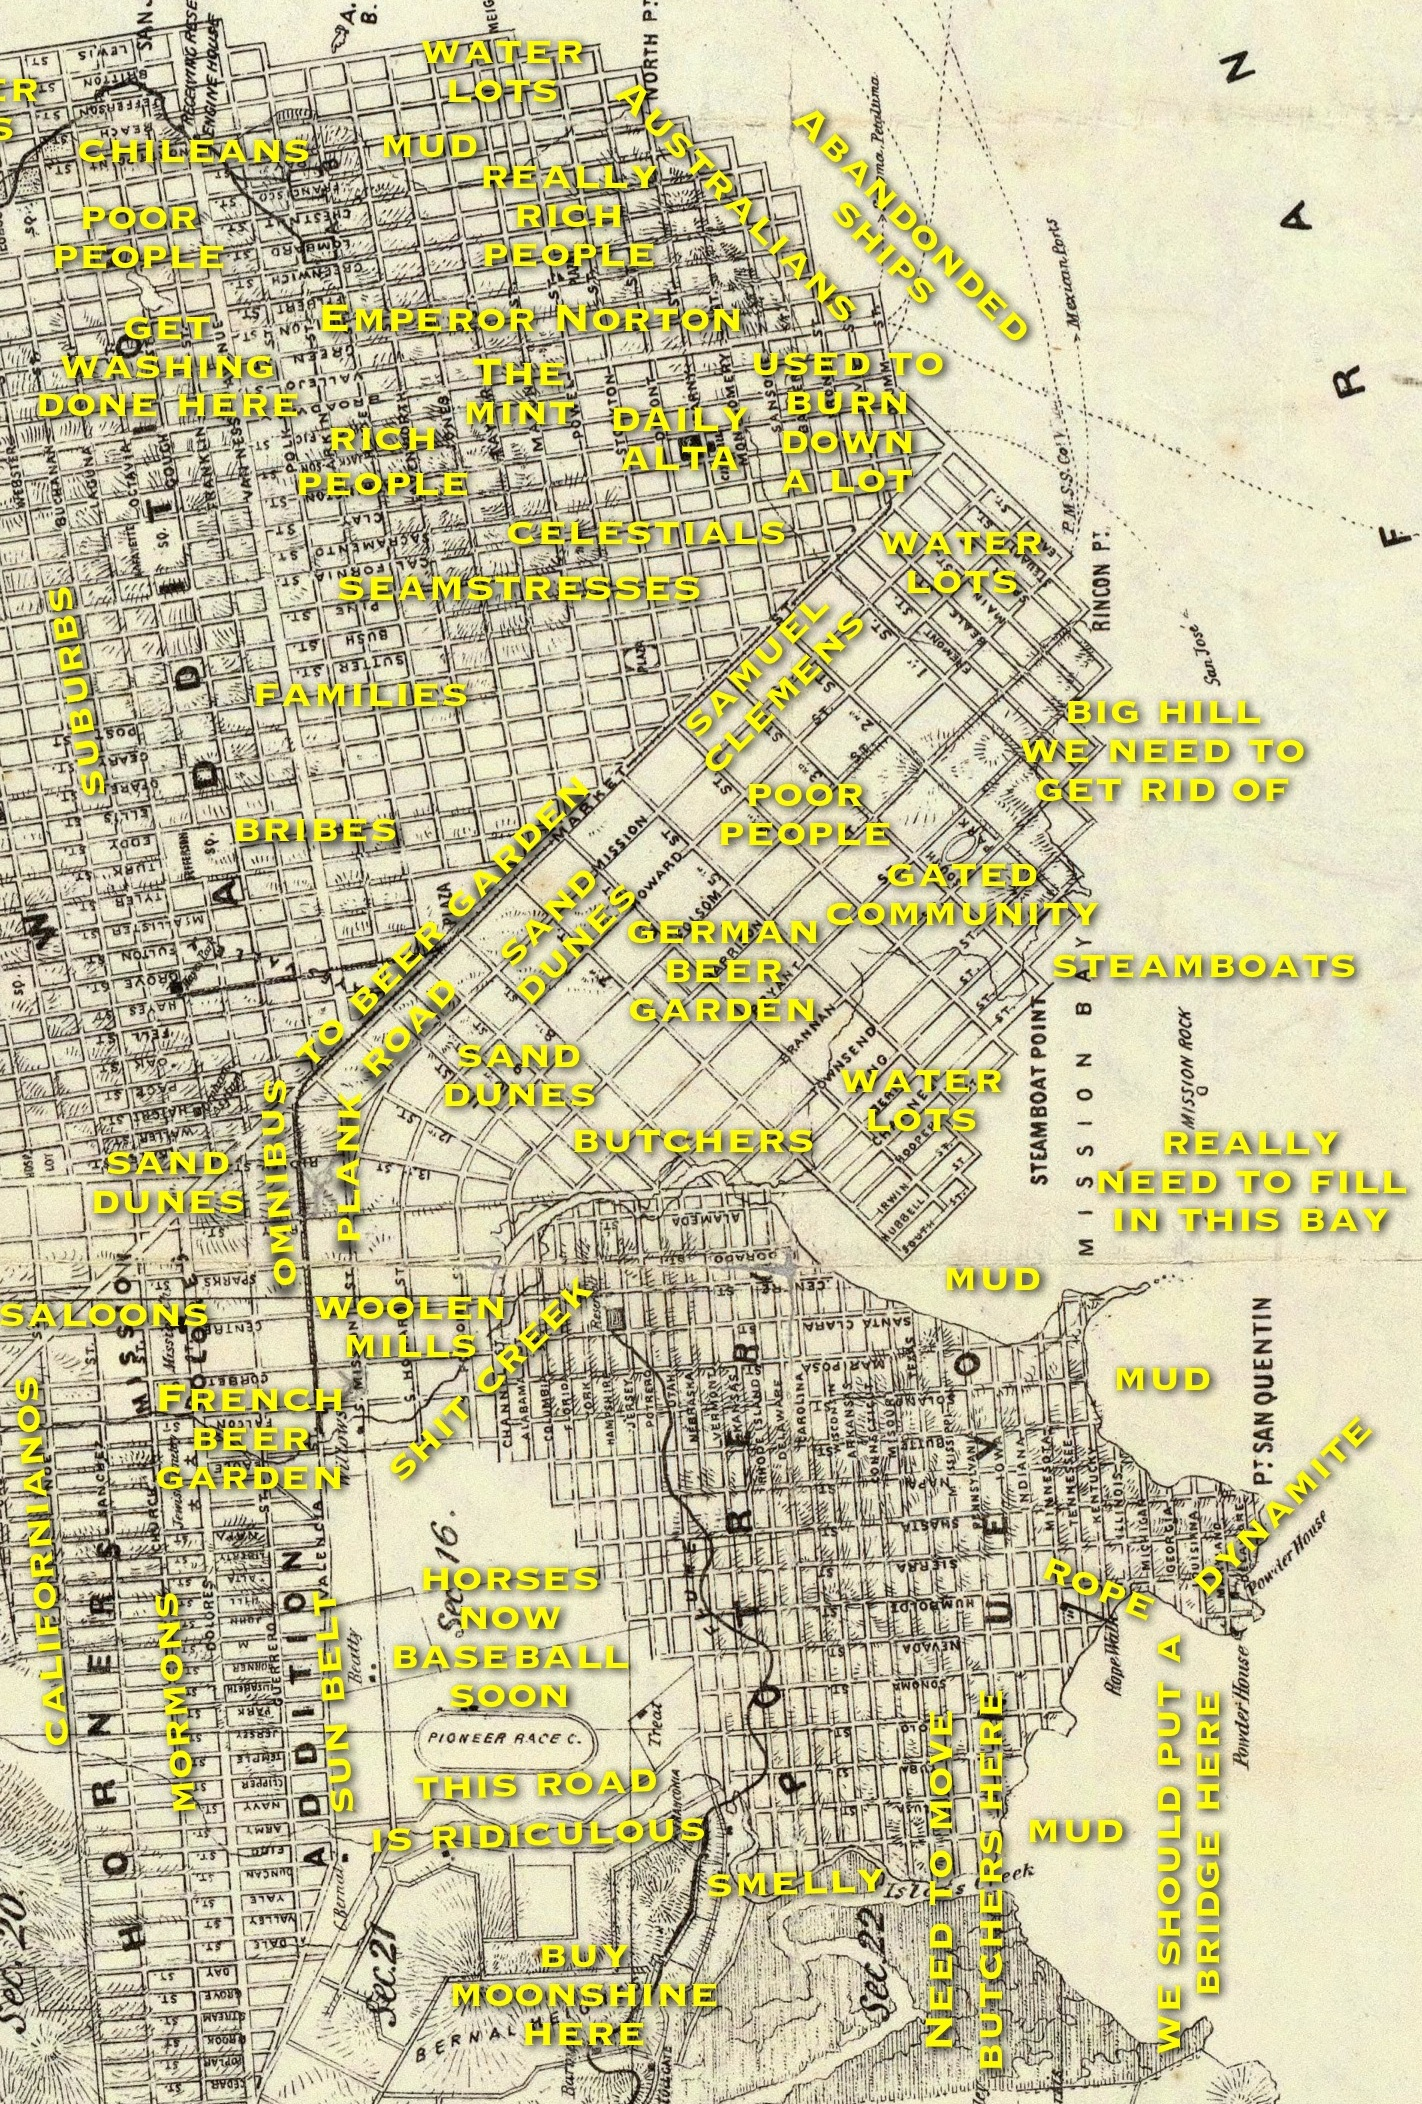 Judgemental Map of San Francisco 1860s edition Burrito Justice